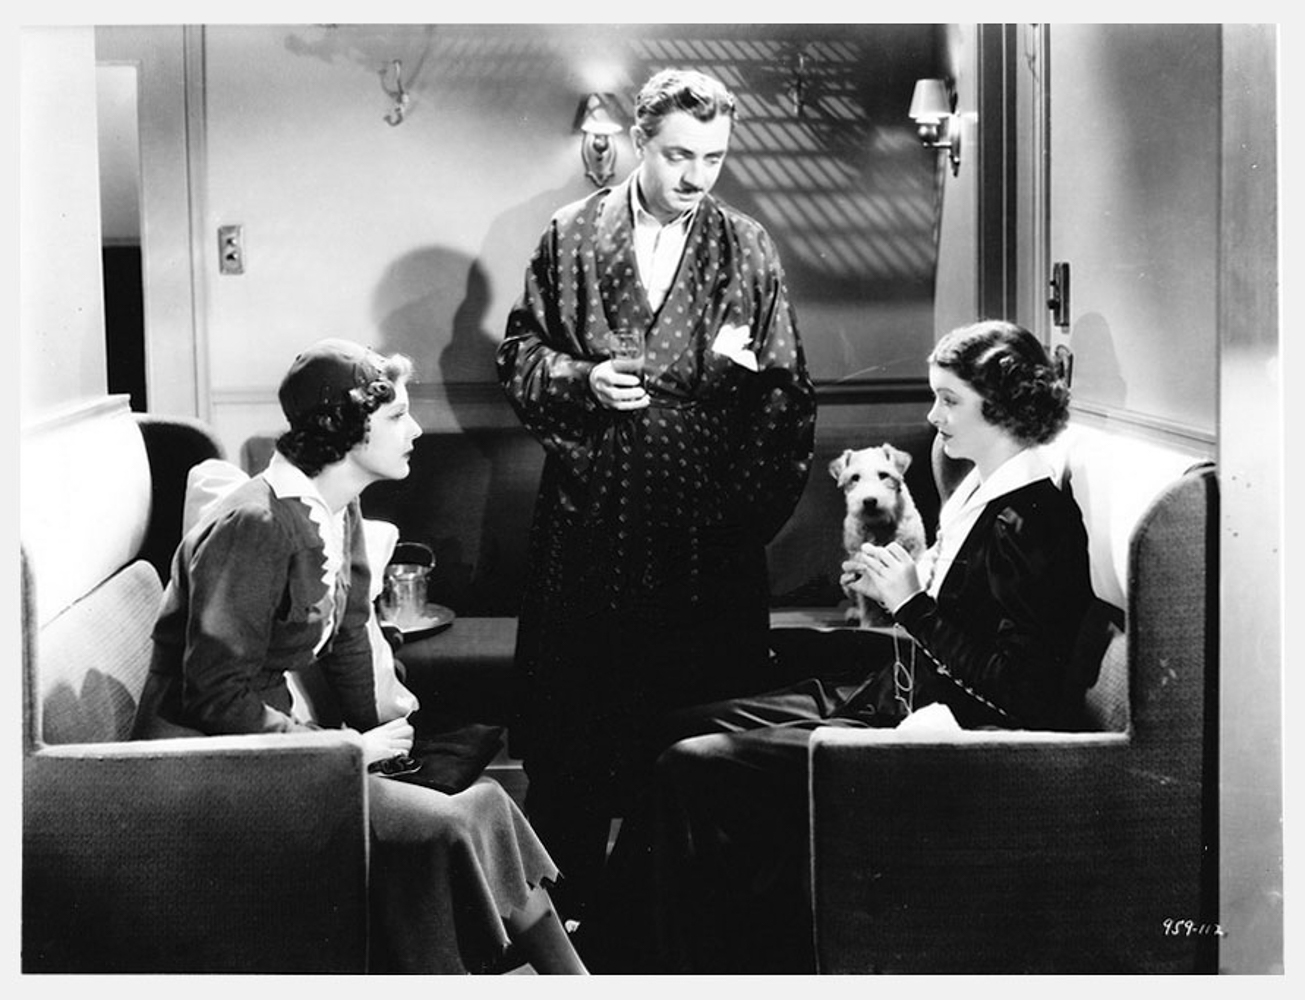 after the thin man 1936 scene still photo 959-112